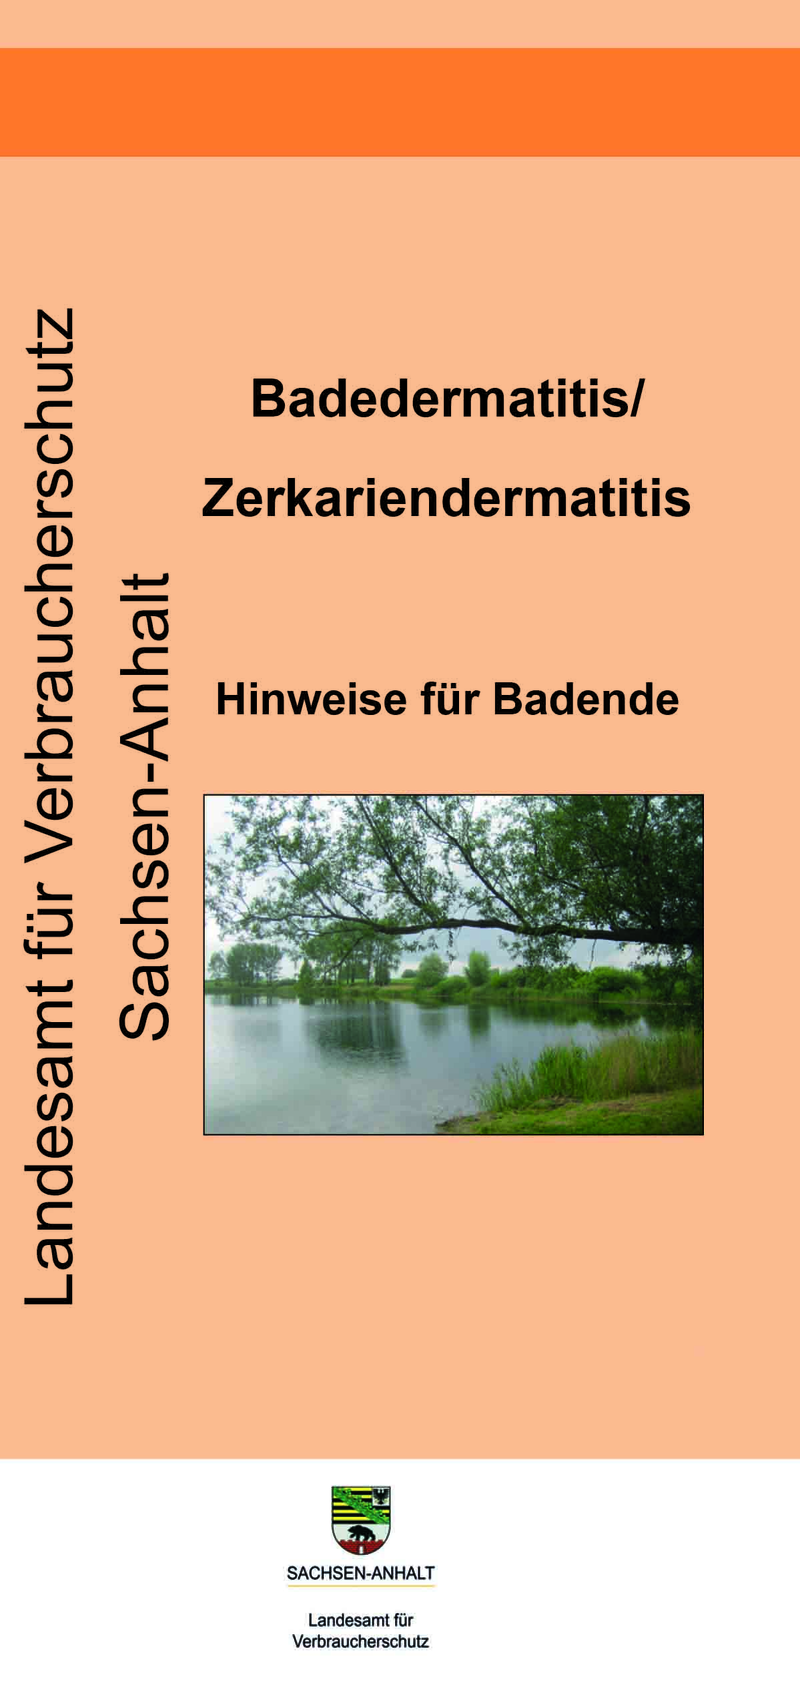 Flyer Badedermatitis